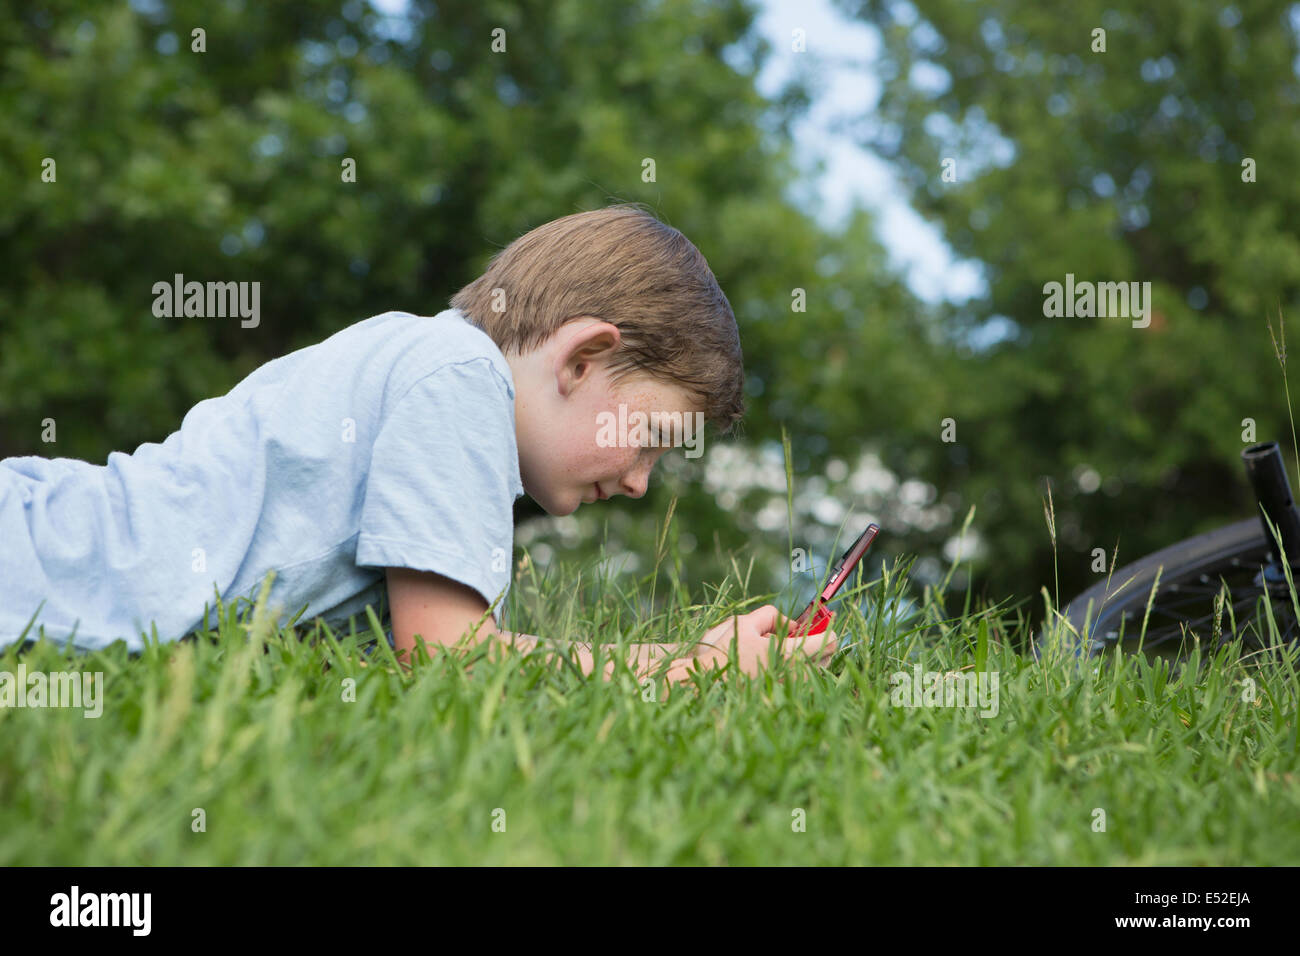 A young boy lying on the grass playing a hand held electronic game. Stock Photo